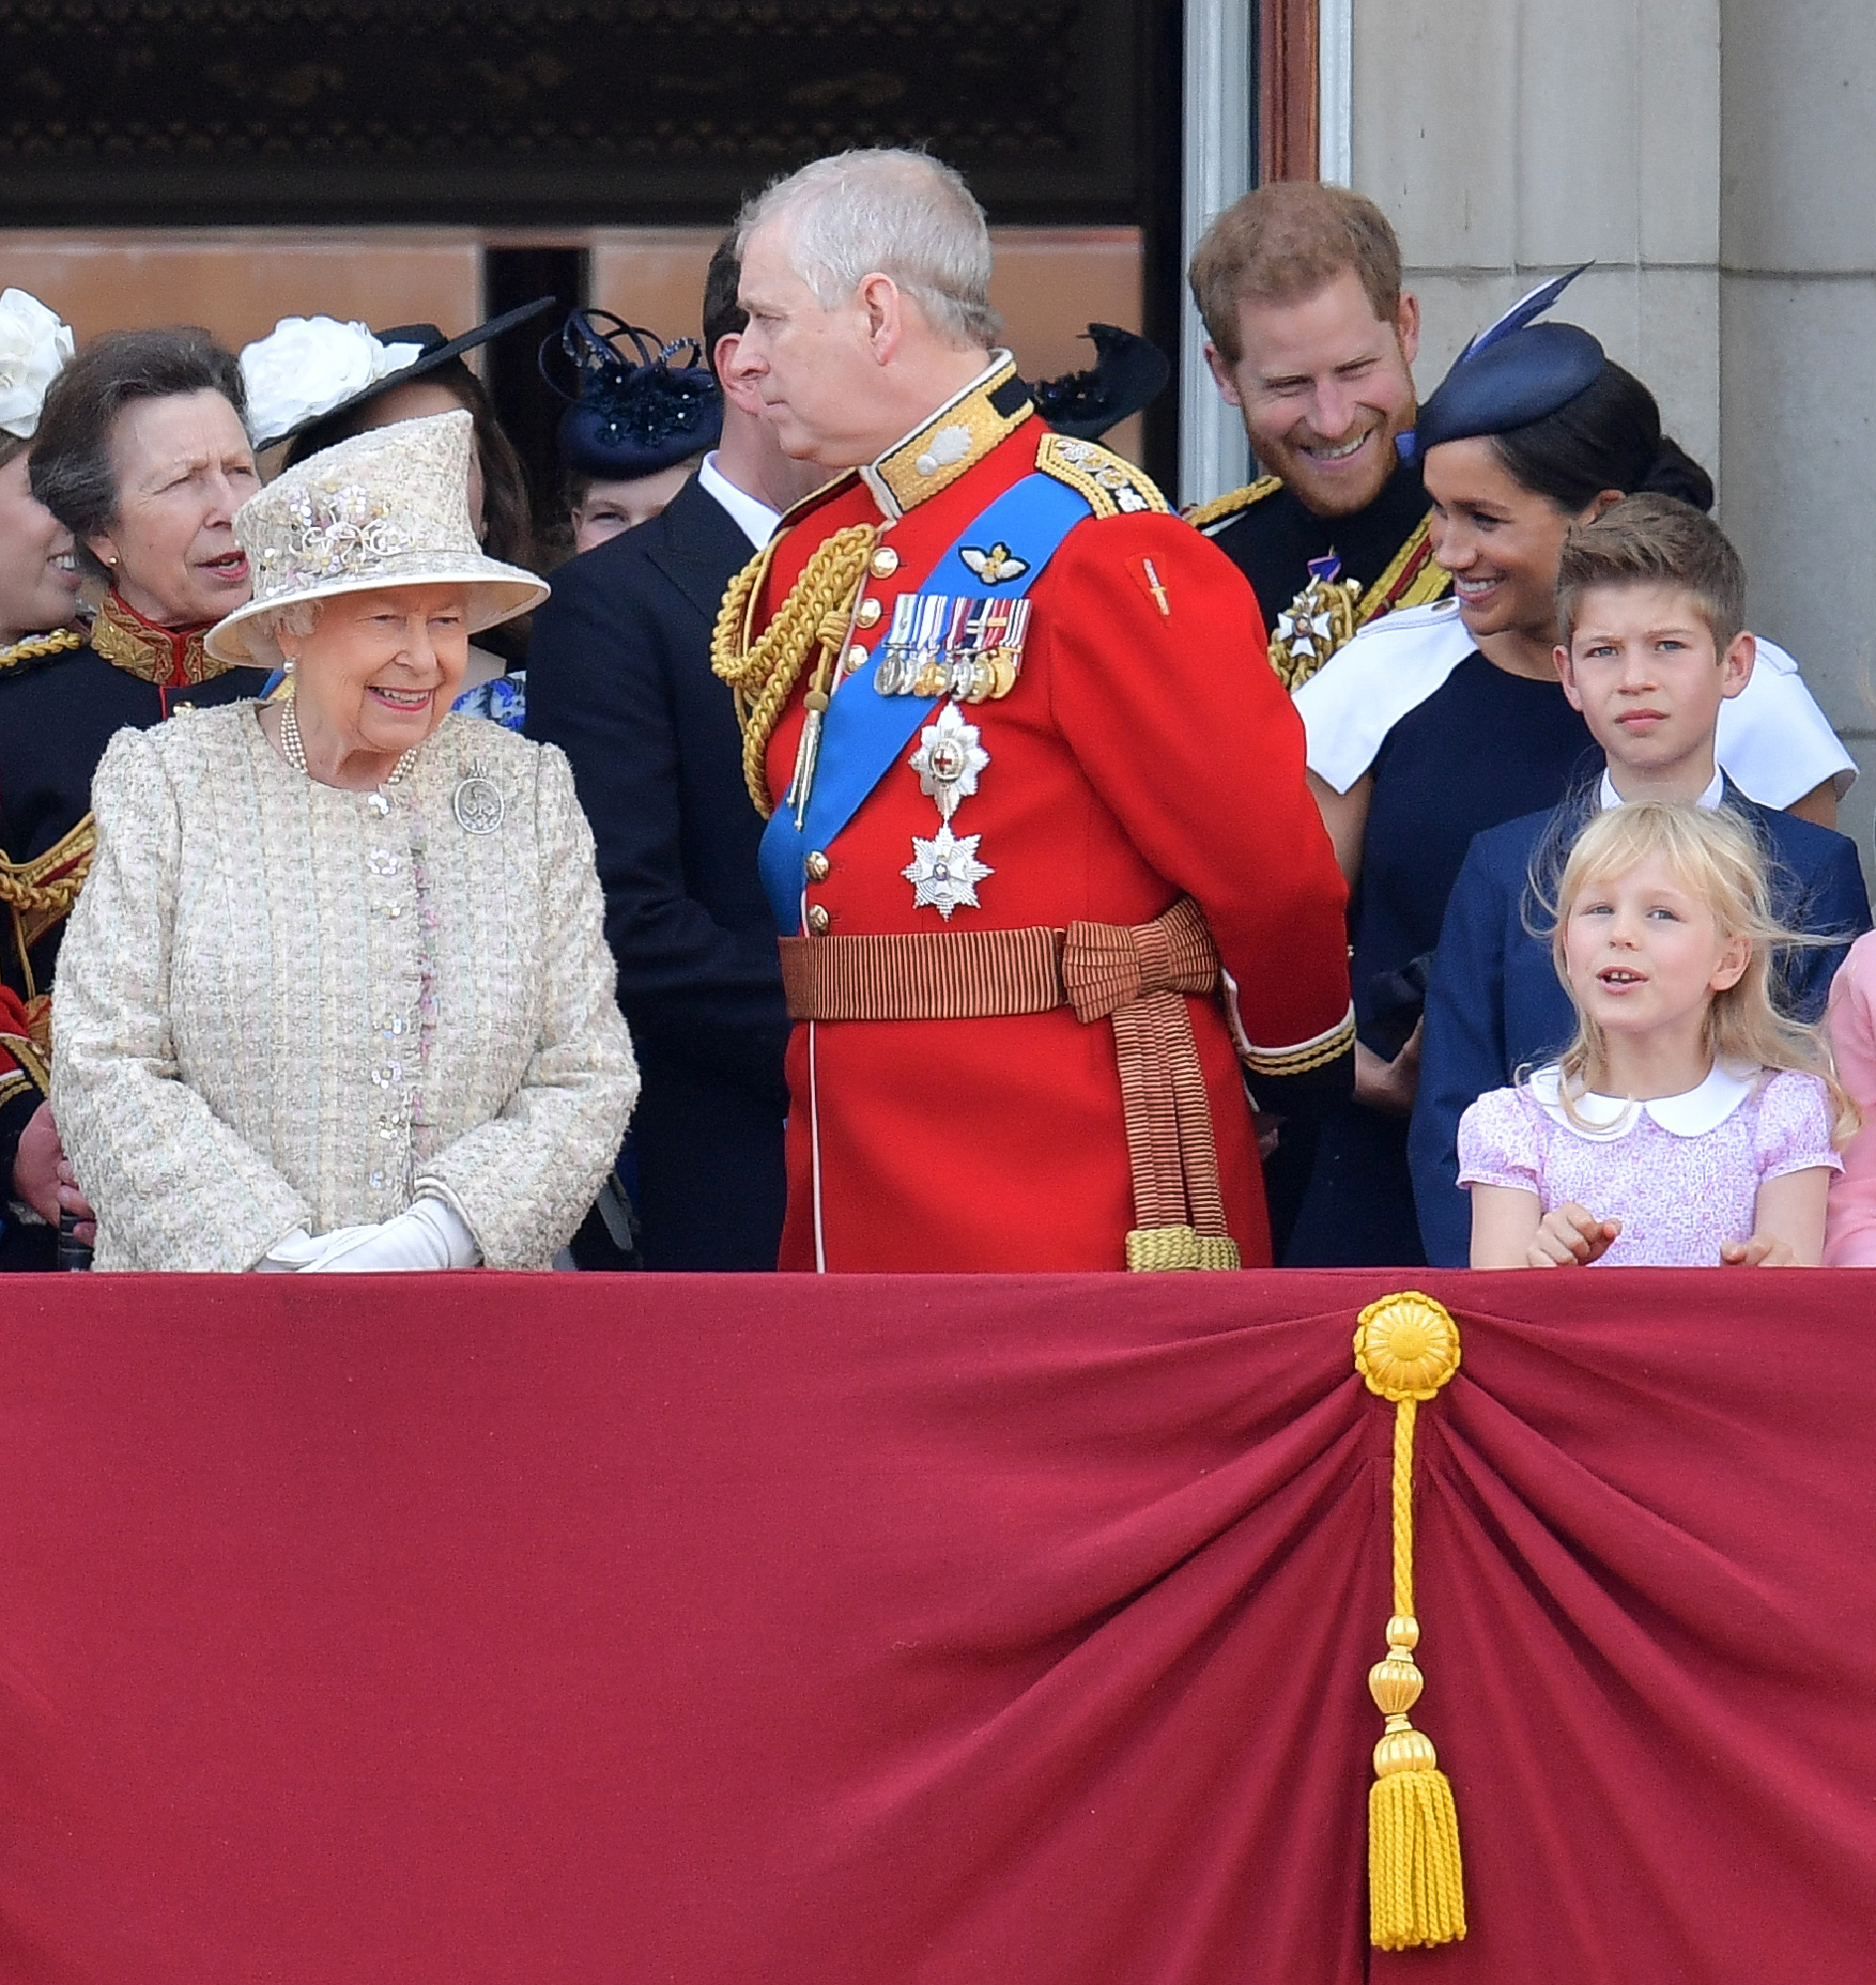 Britain's Queen Elizabeth II and Britain's Prince Andrew, Duke of York stand with other members of the Royal Family on the balcony of Buckingham Palace. (DANIEL LEAL-OLIVAS/AFP via Getty Images)